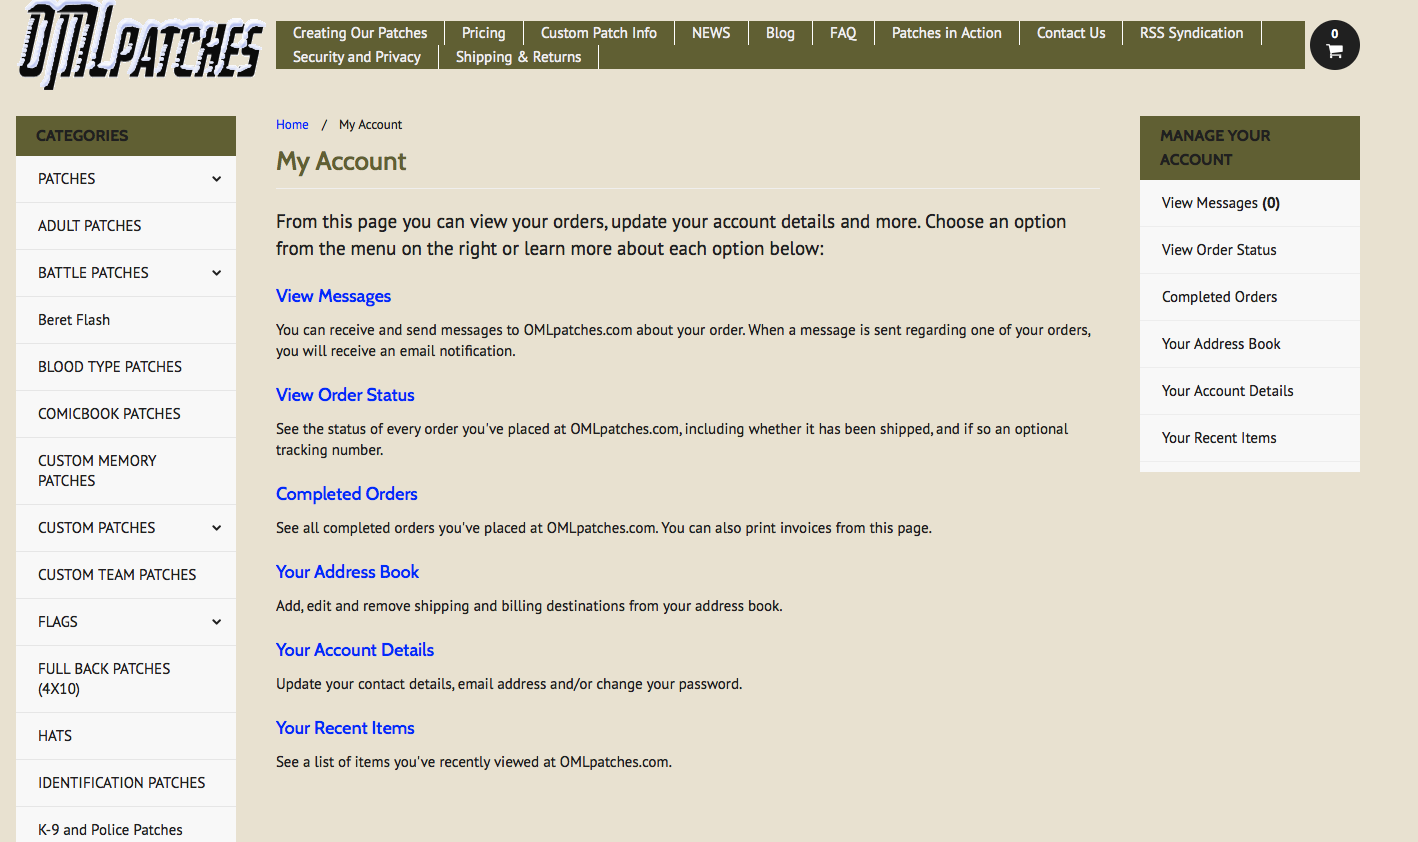 Options when you sign into your account at OMLpatches.com